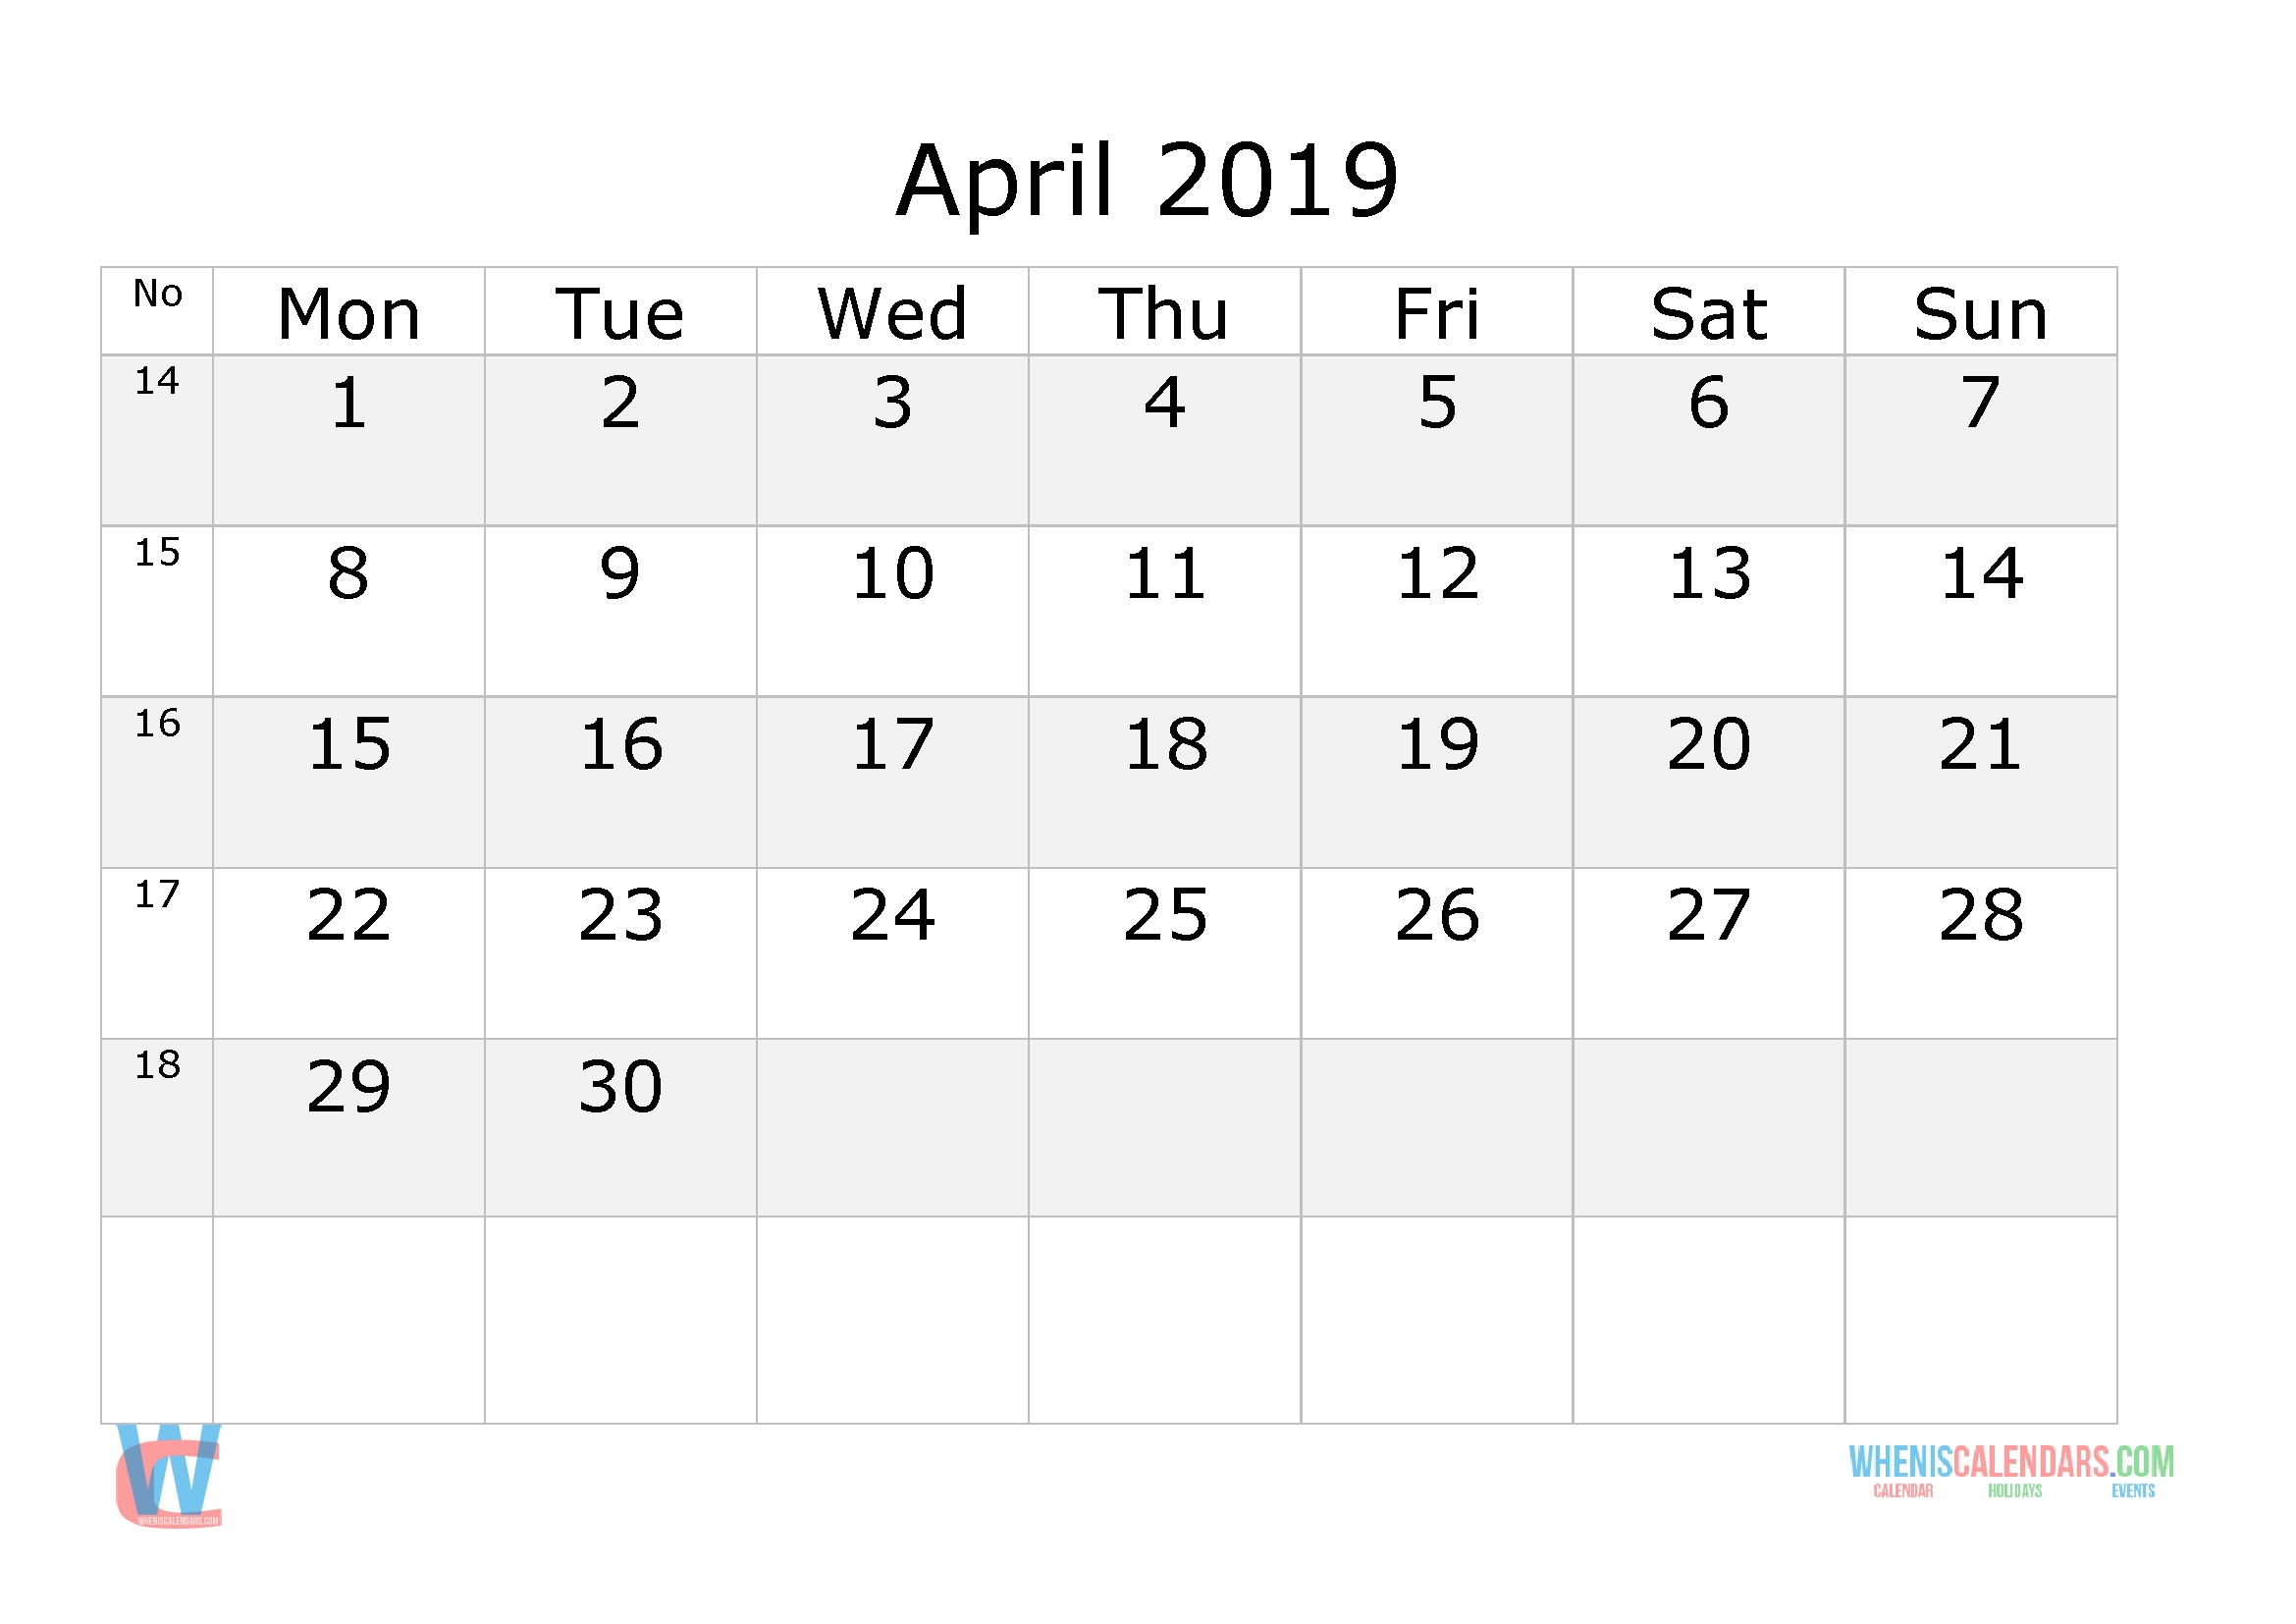 April 2019 Calendar With Week Numbers Printable, Start By